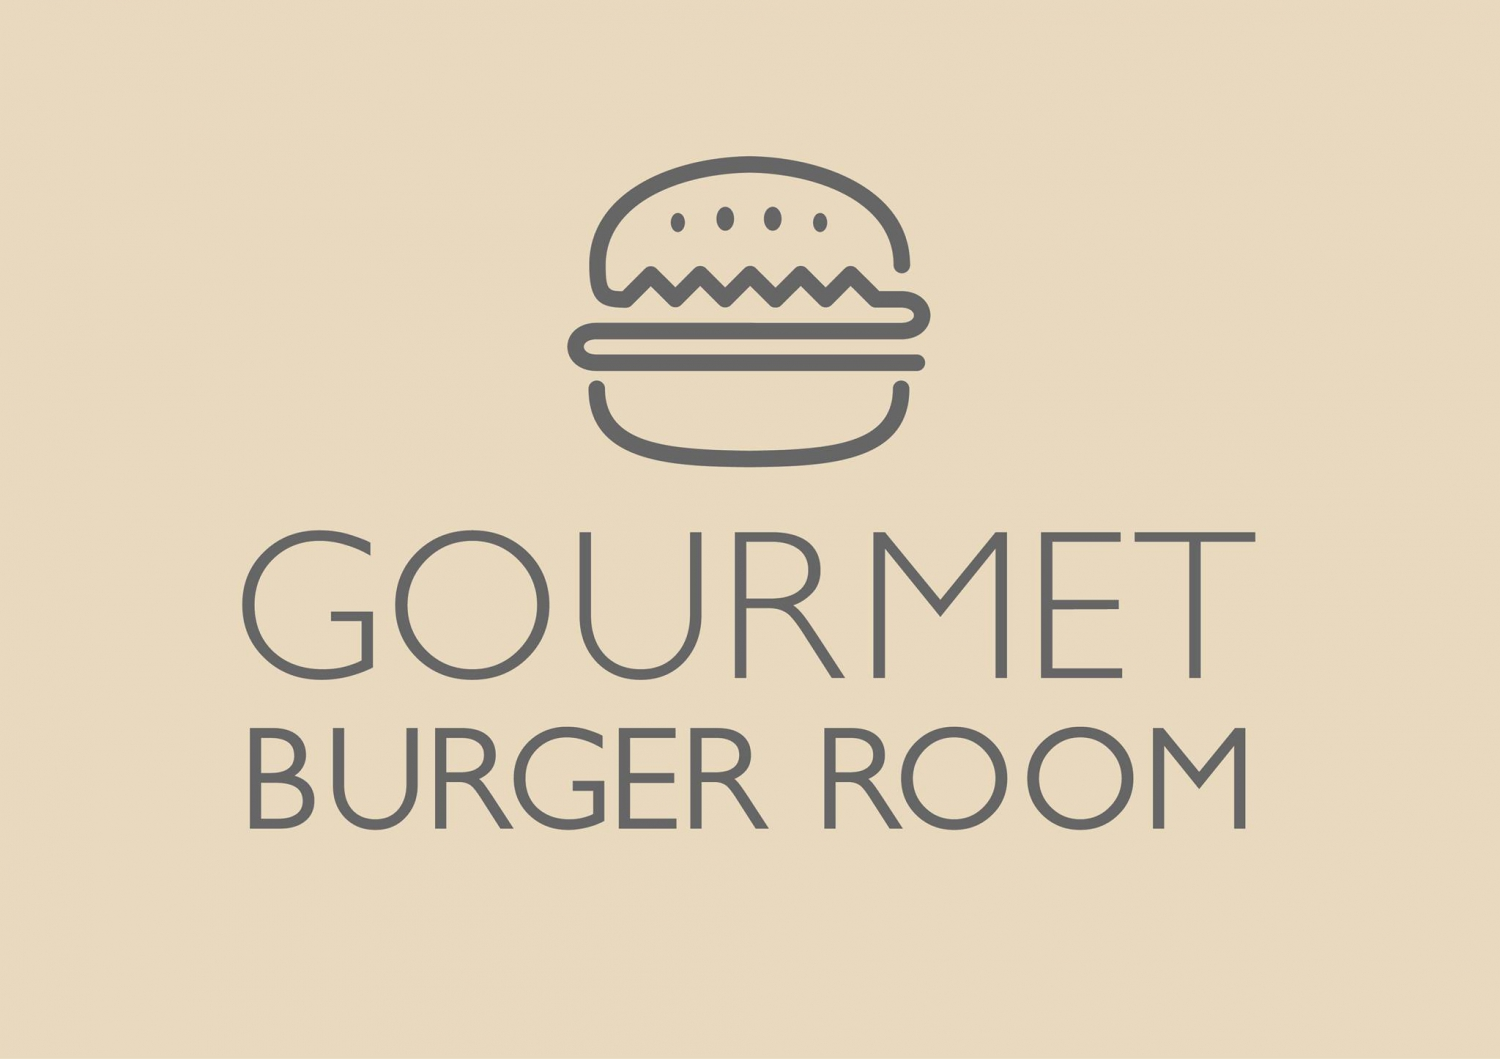 Gourmet Burger room